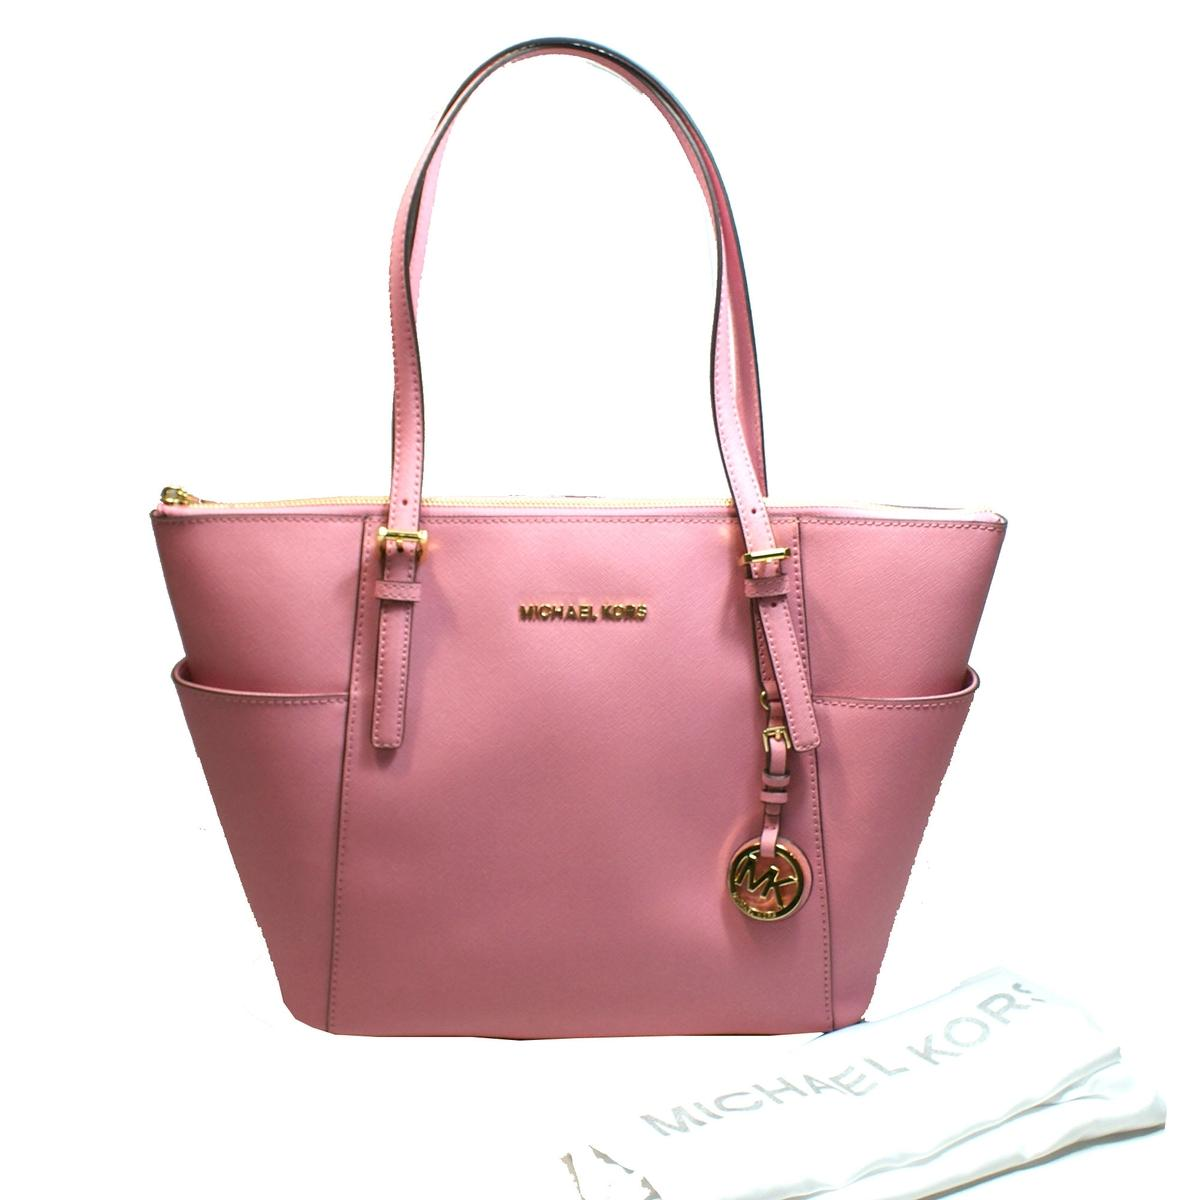 7f8945e9410441 Michael Kors Jet Set East/West Genuine Leather Tote Bag Misty Rose ...